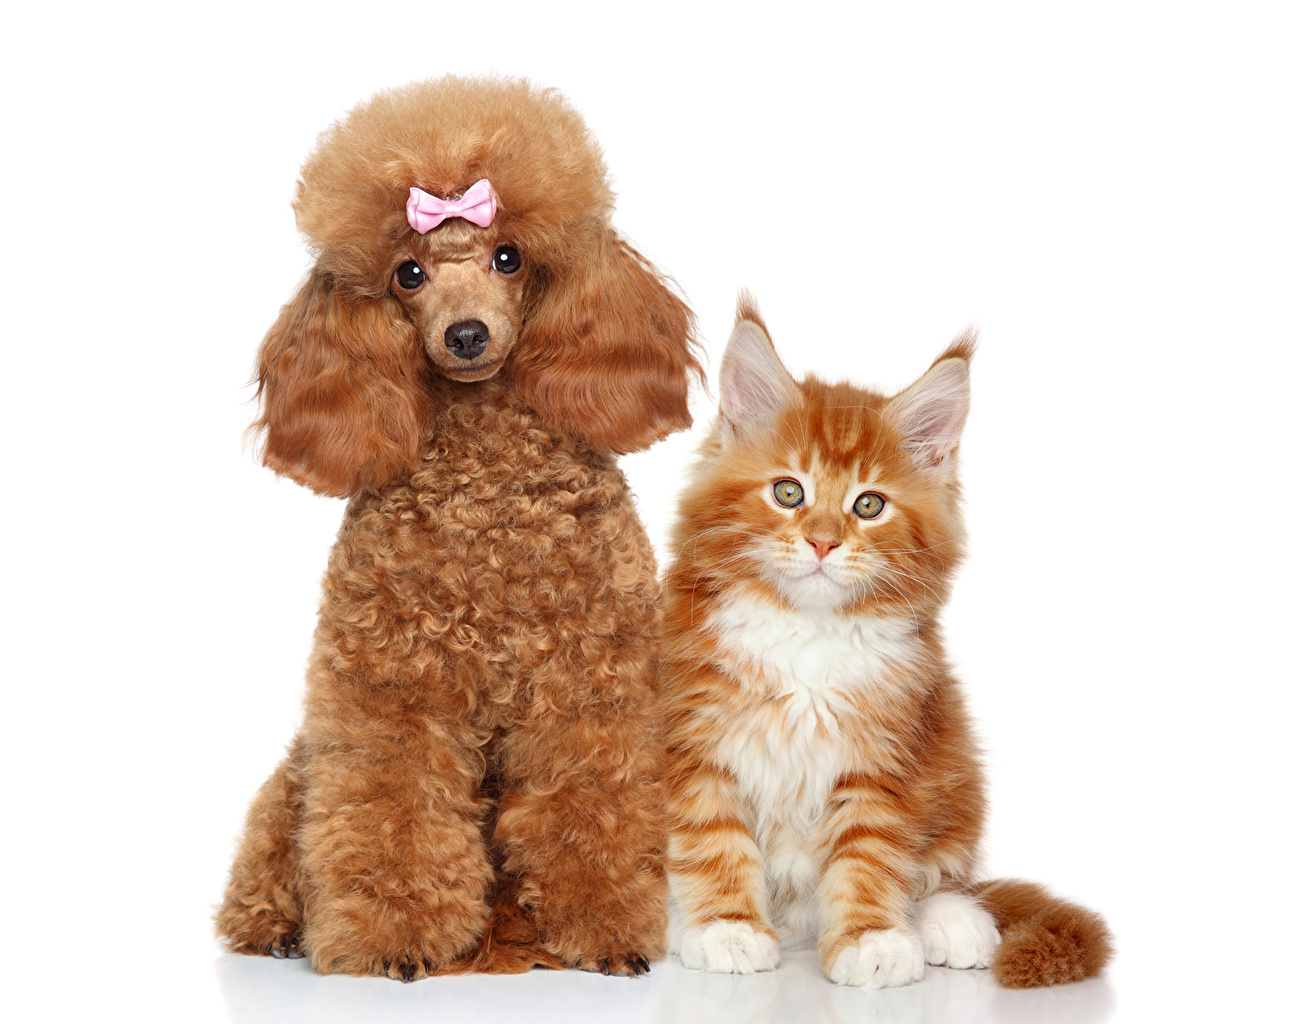 Photos Poodle dog Cats 2 red orange Bowknot animal cat Dogs Two Ginger color bow knot Animals